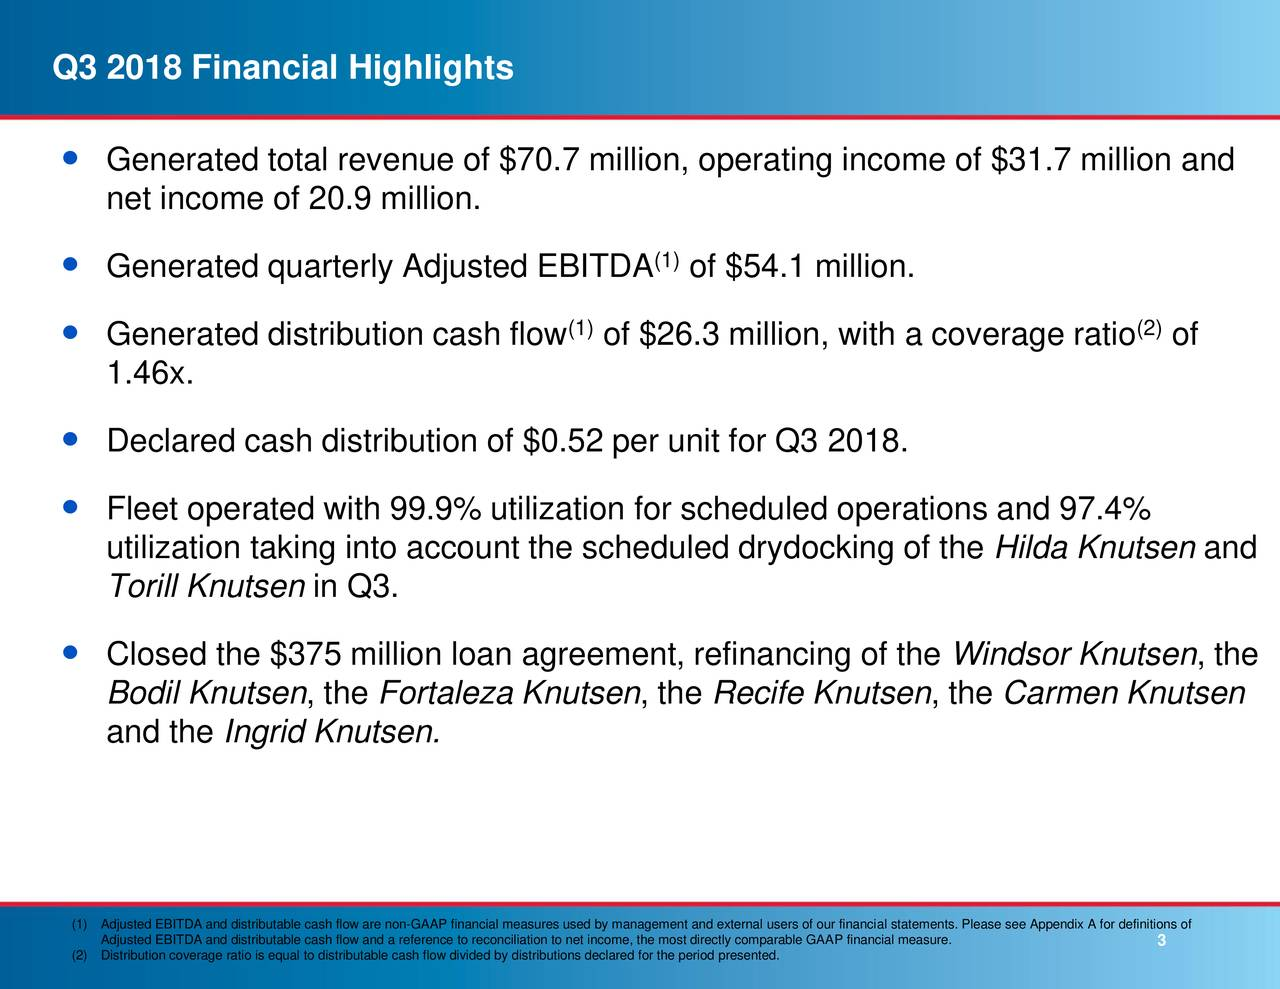  Generated total revenue of $70.7 million, operating income of $31.7 million and net income of 20.9 million. (1)  Generated quarterly Adjusted EBITDA of $54.1 million.  Generated distribution cash flow (1of $26.3 million, with a coverage ratio (2of 1.46x.  Declared cash distribution of $0.52 per unit for Q3 2018.  Fleet operated with 99.9% utilization for scheduled operations and 97.4% utilization taking into account the scheduled drydocking of the Hilda Knutsen and Torill Knutsen in Q3.  Closed the $375 million loan agreement, refinancing of the Windsor Knutsen, the Bodil Knutsen, the Fortaleza Knutsen, the Recife Knutsen, the Carmen Knutsen and the Ingrid Knutsen. (1Adjusted EBITDA and distributable cash flow and a reference to reconciliation to ne3 income, the most directly comparable GAAP financial measure.ease see Appendix A for definitions of (2Distribution coverage ratio is equal to distributable cash flow divided by distributions declared for the period presented.